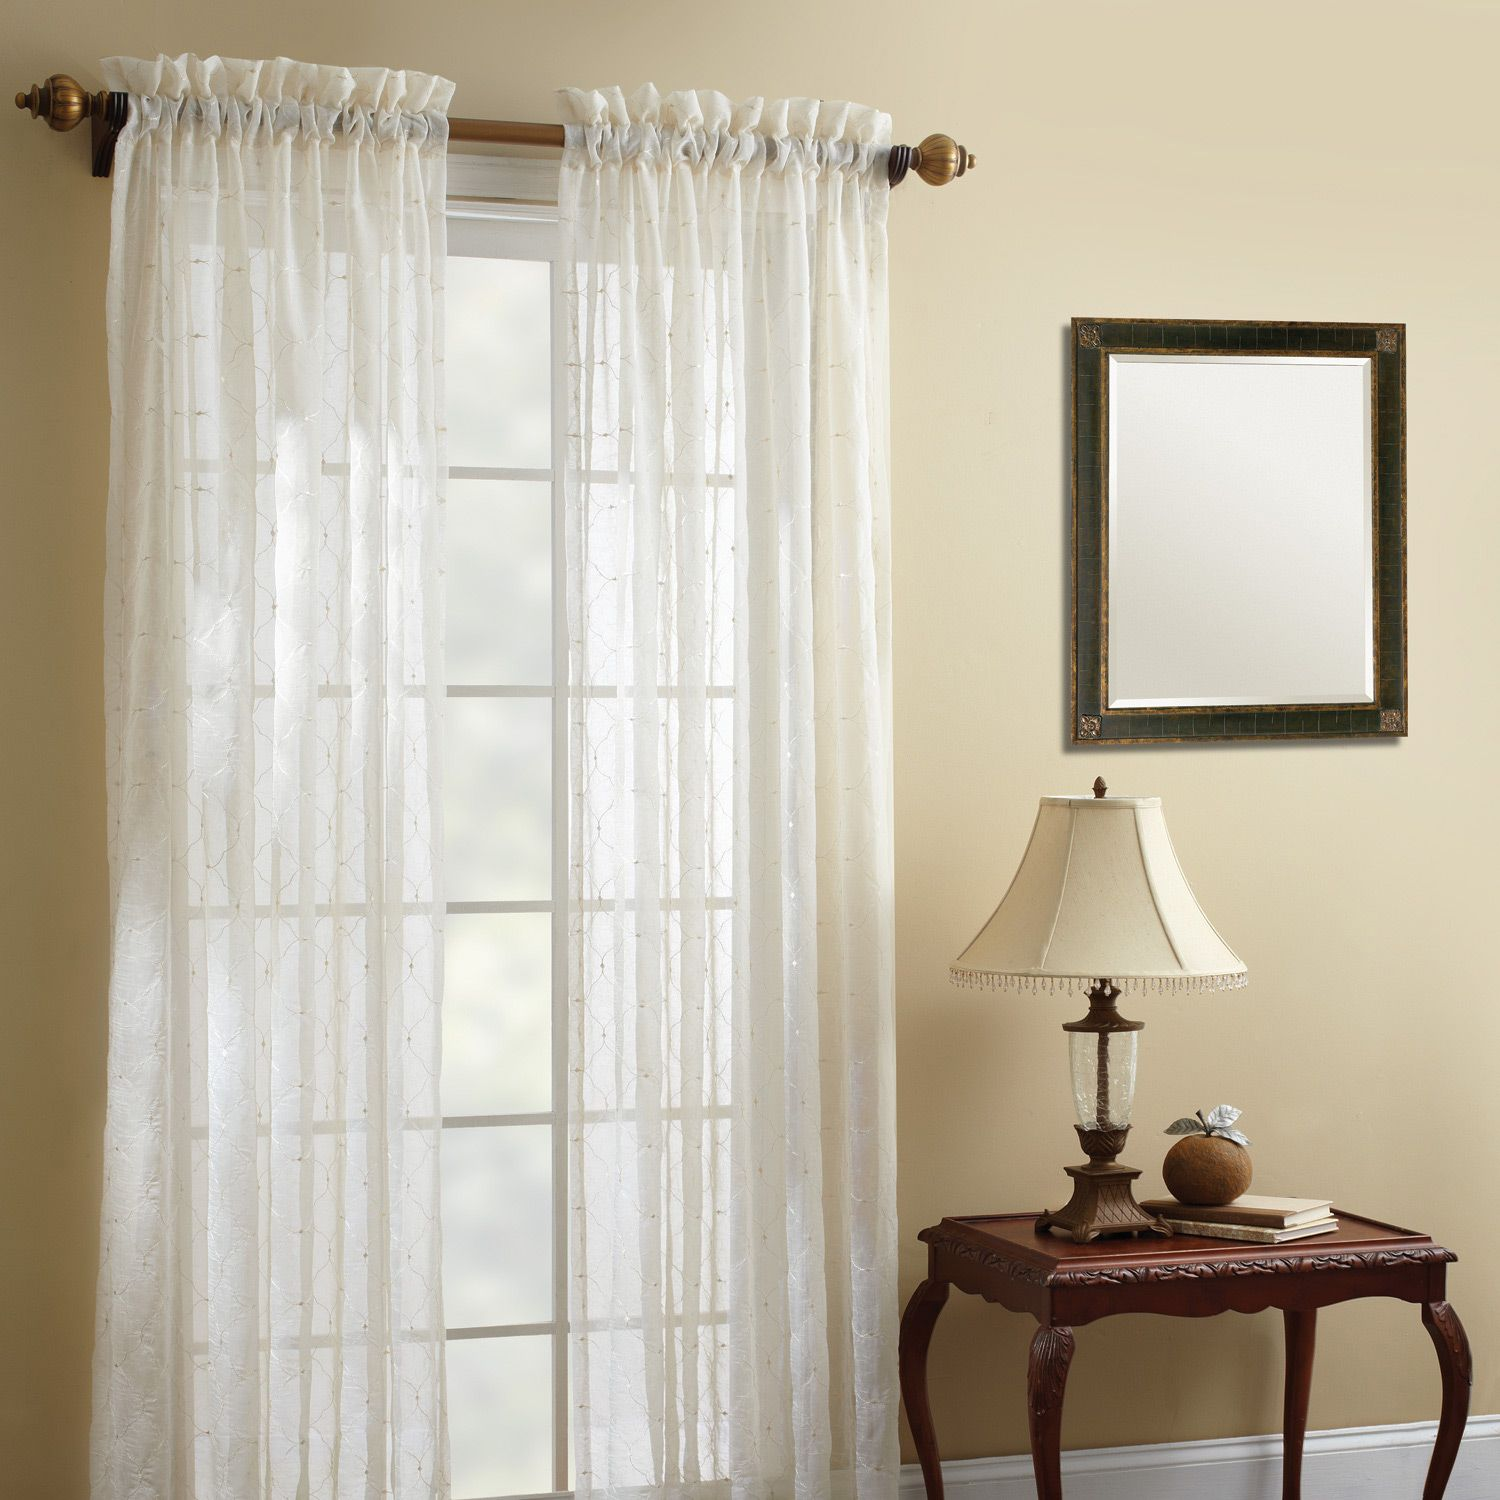 On a maximum use the valances window treatments window for What is a window treatment